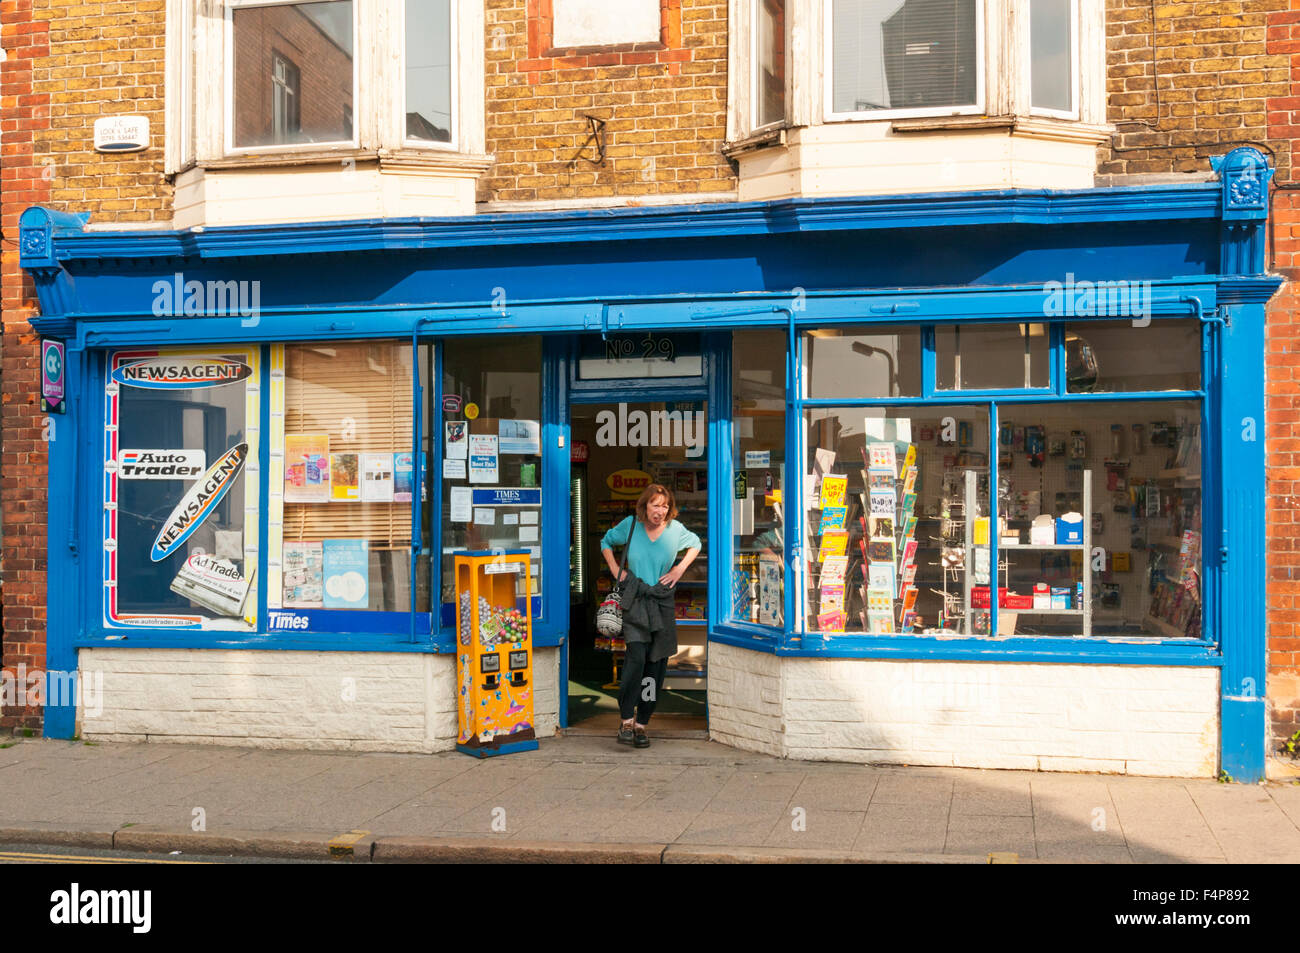 A local newsagents shop. Stock Photo